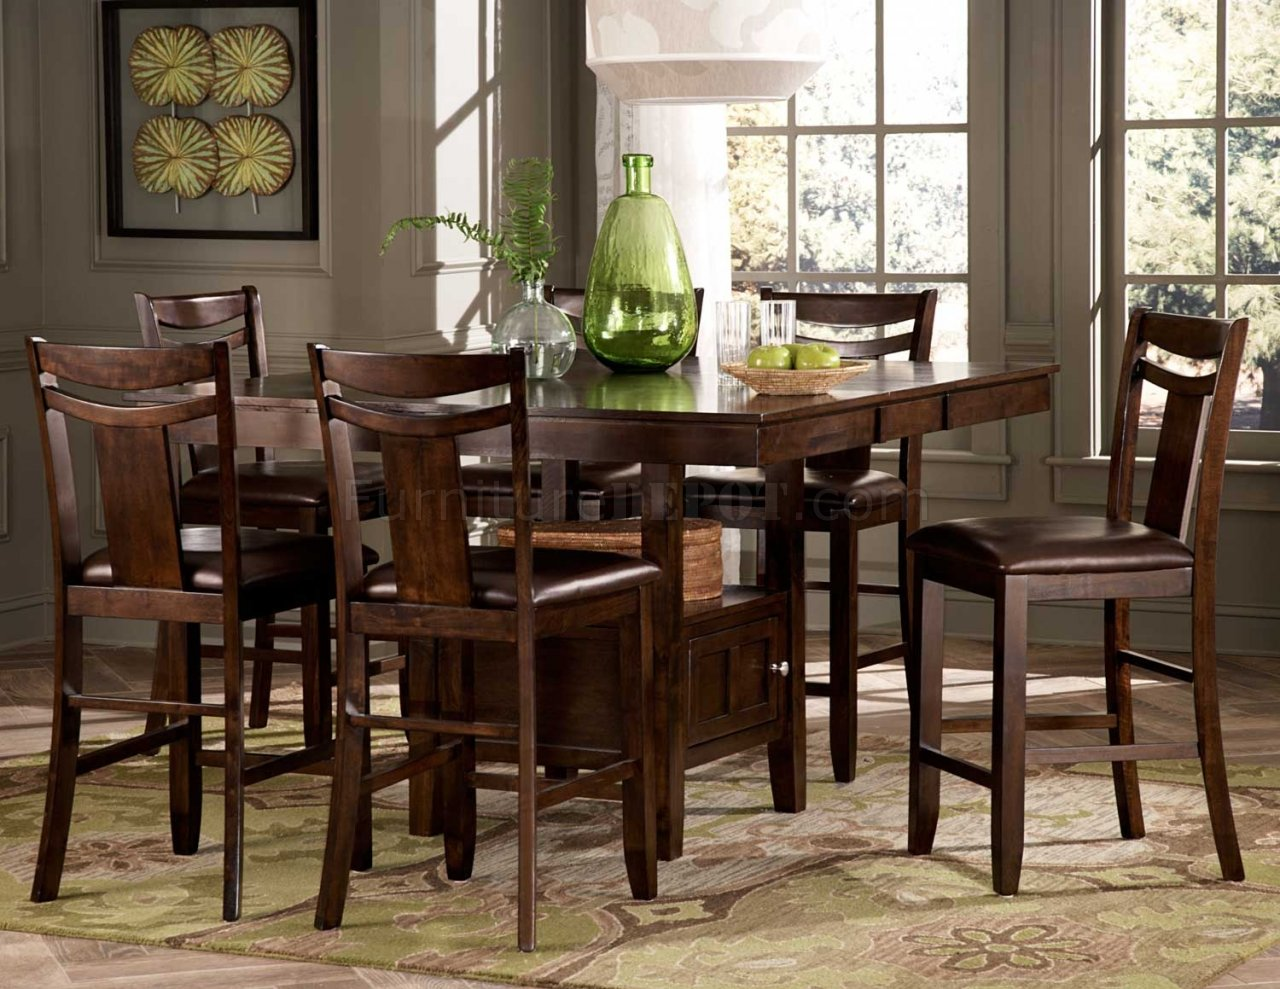 broome counter height dining 5pc set by homelegance p counter height kitchen chairs